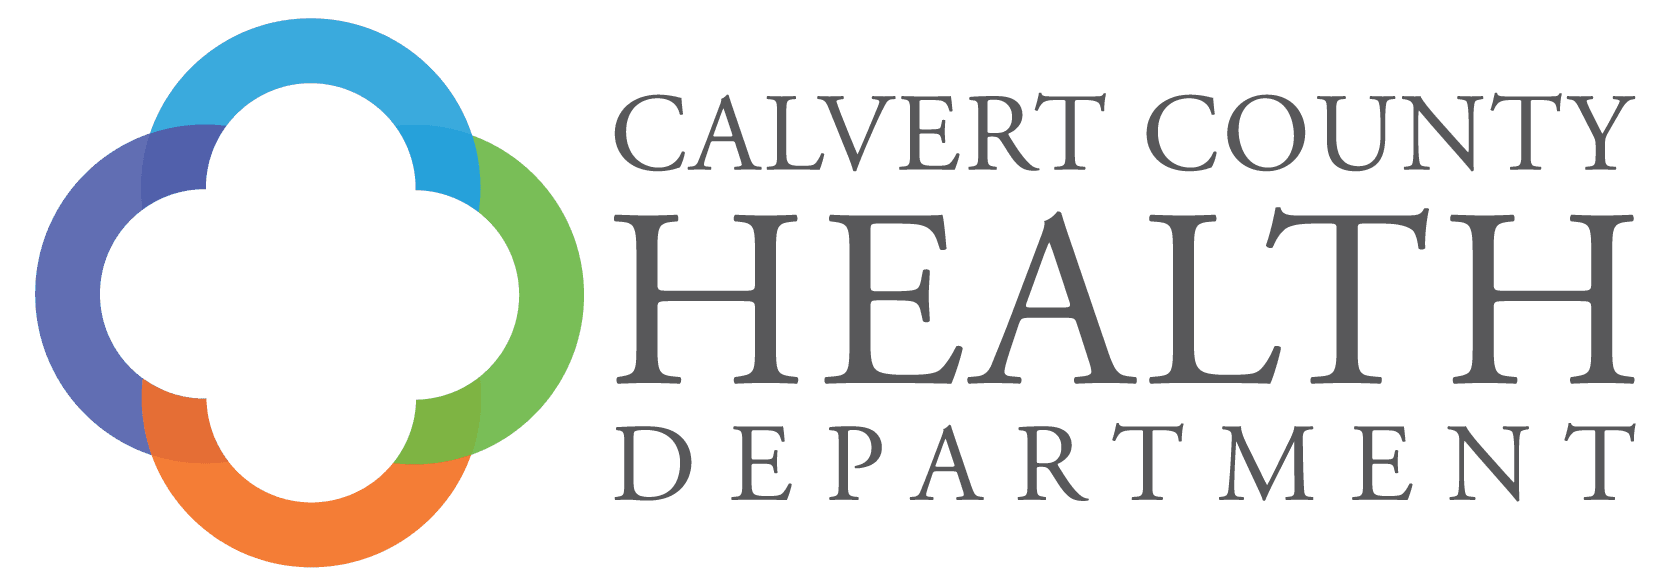 Calvert country health department logo